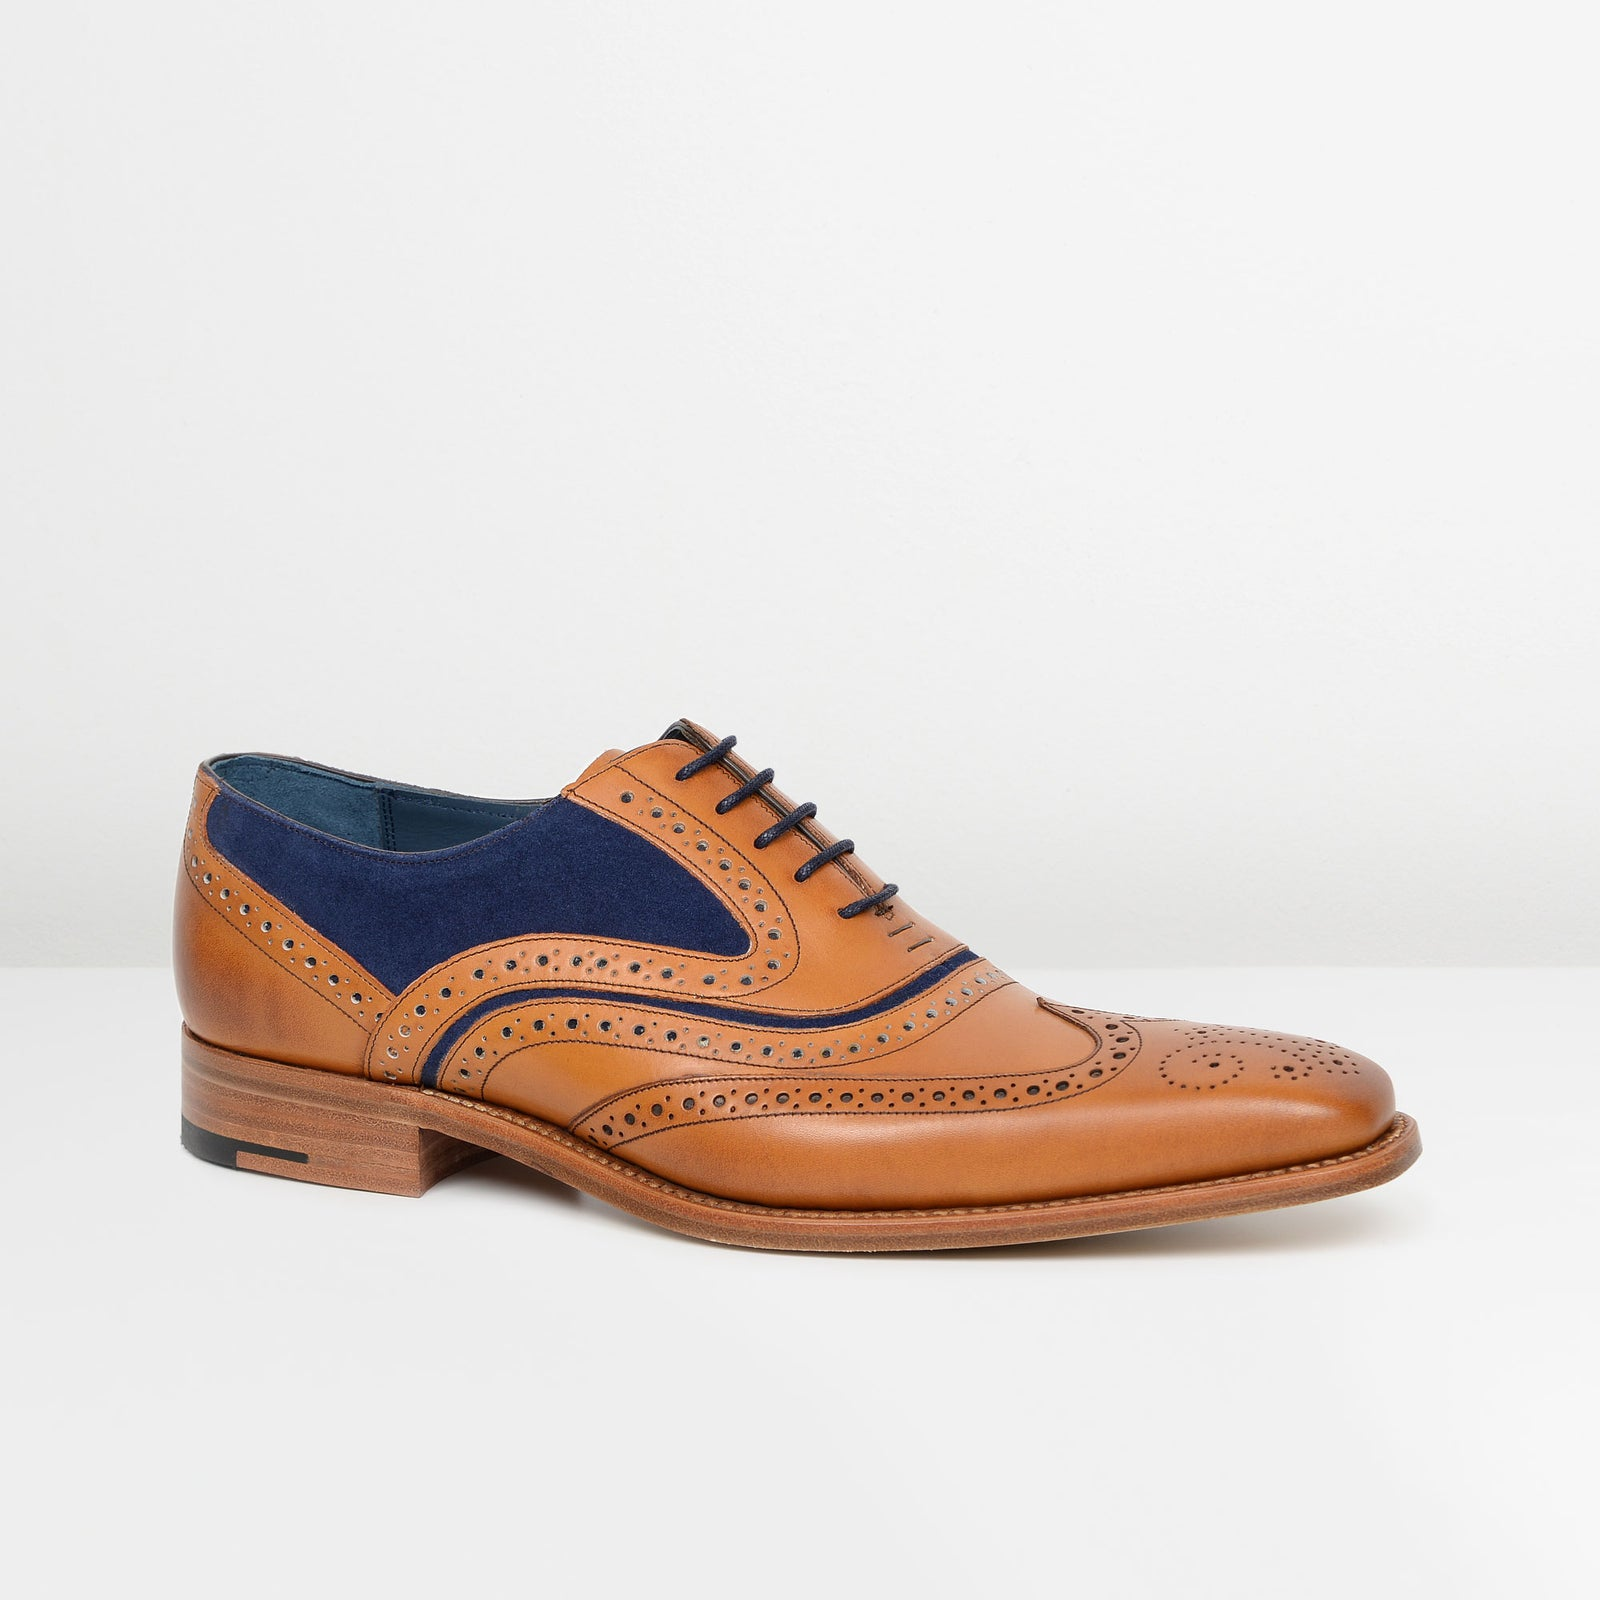 Cedar Leather/Navy Suede McCLean Oxford Brogues